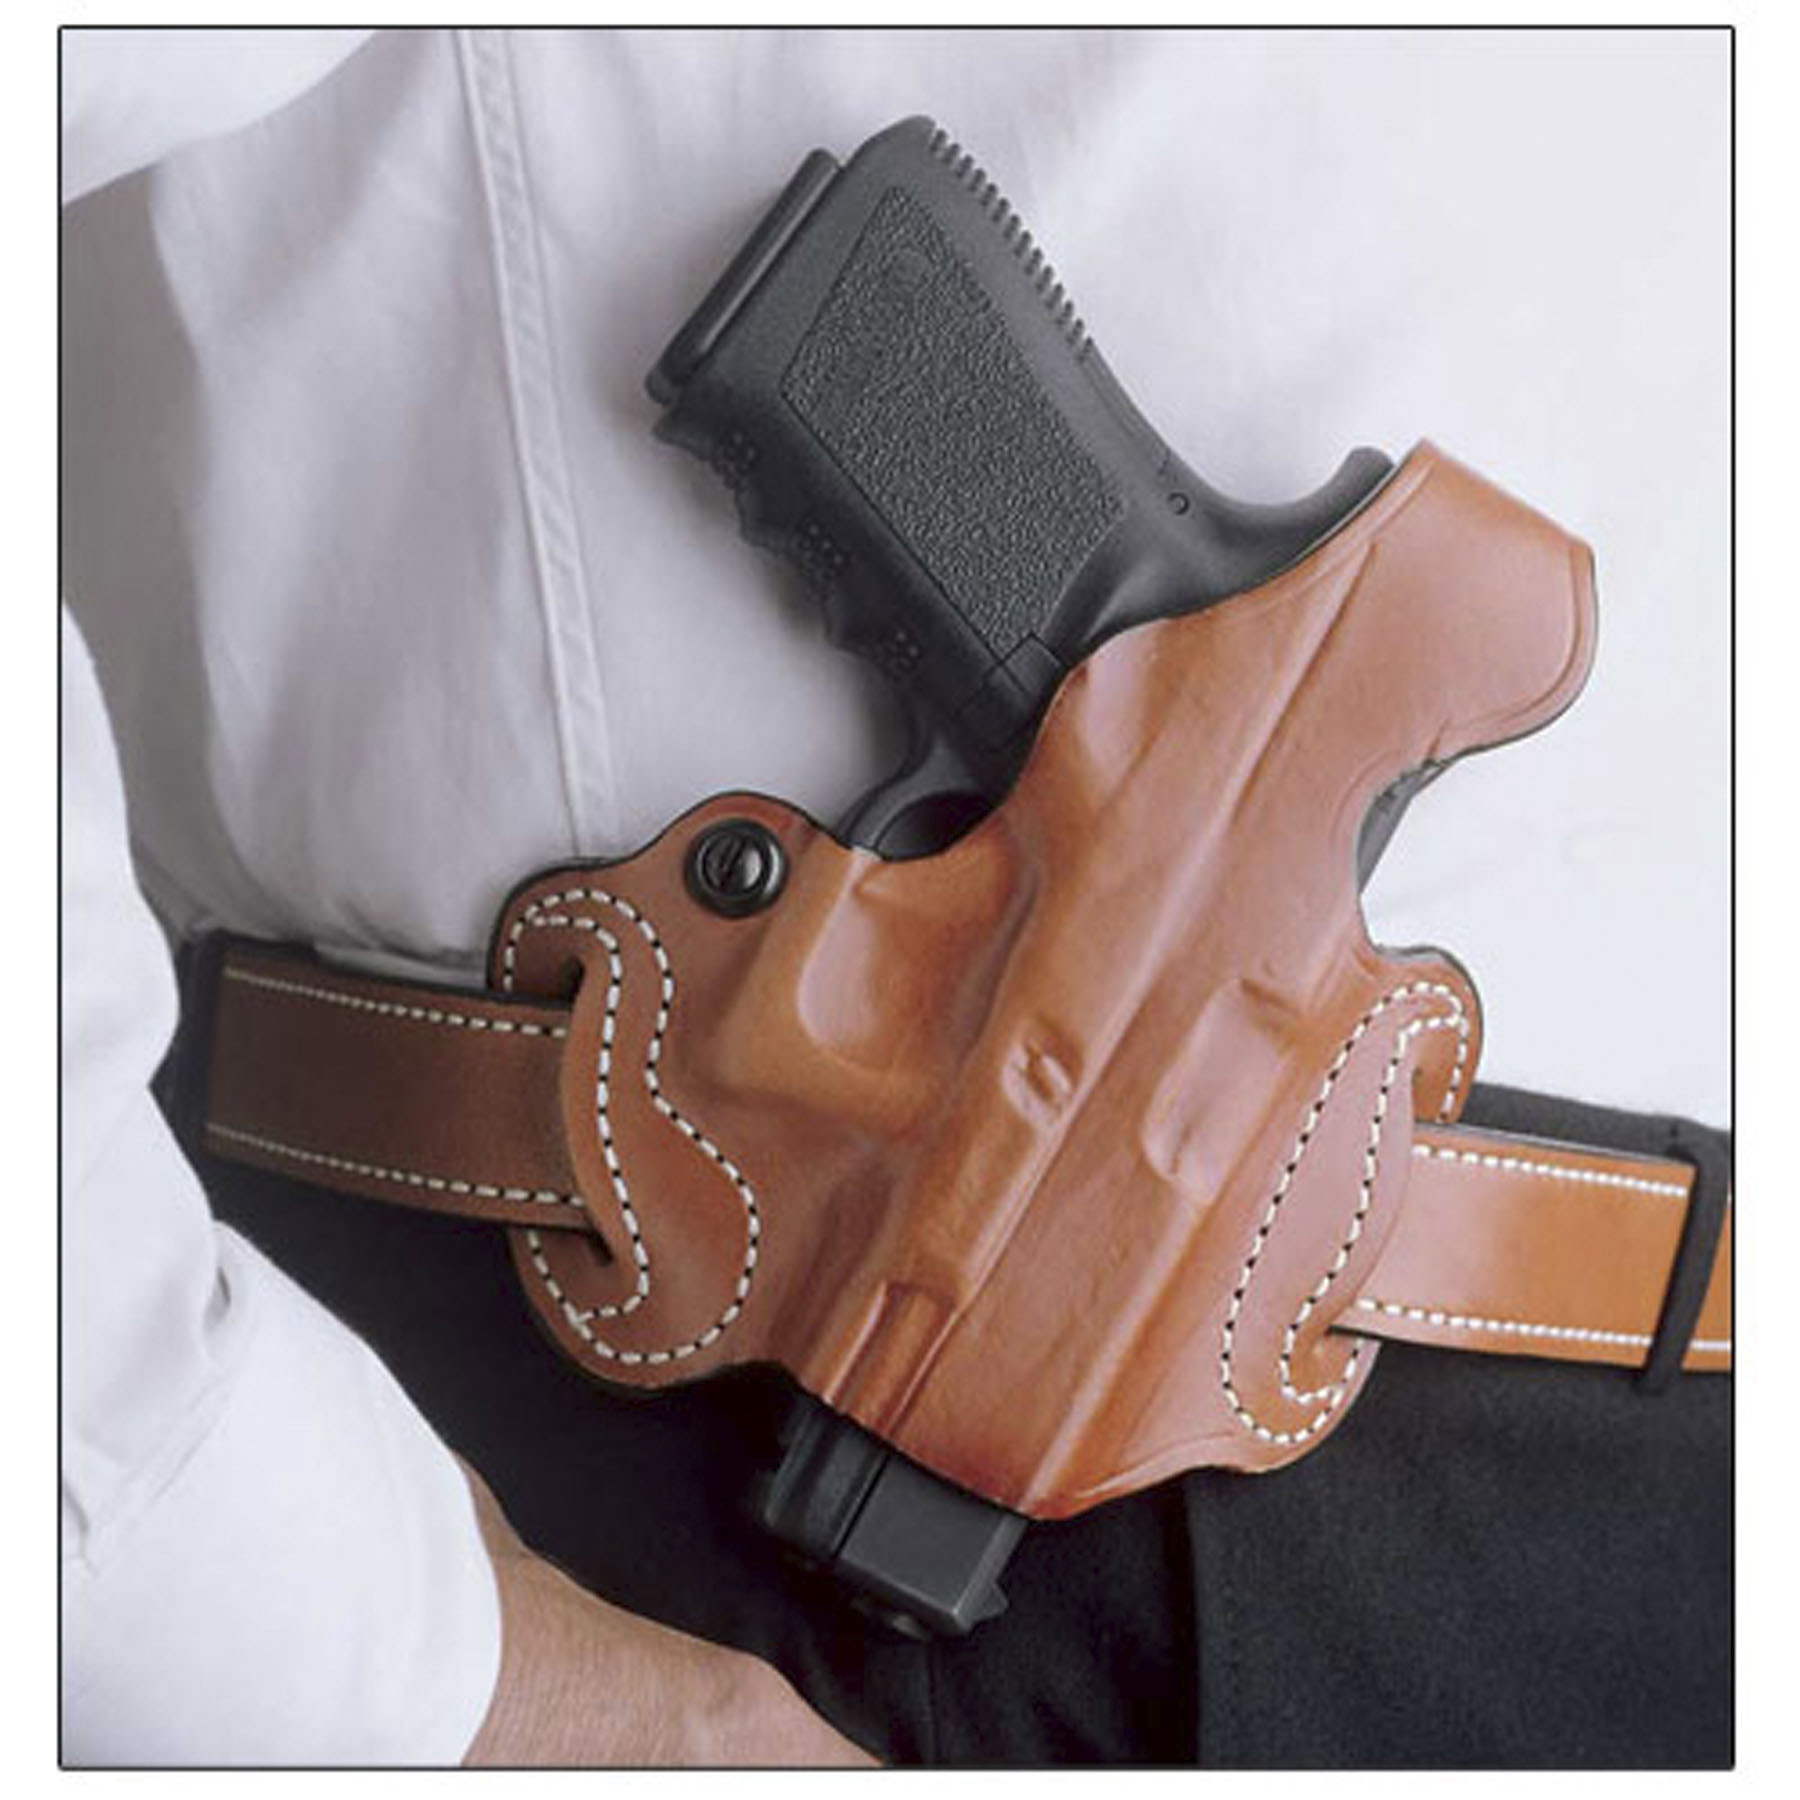 DeSantis Thumb Break Mini Slide Belt Holster